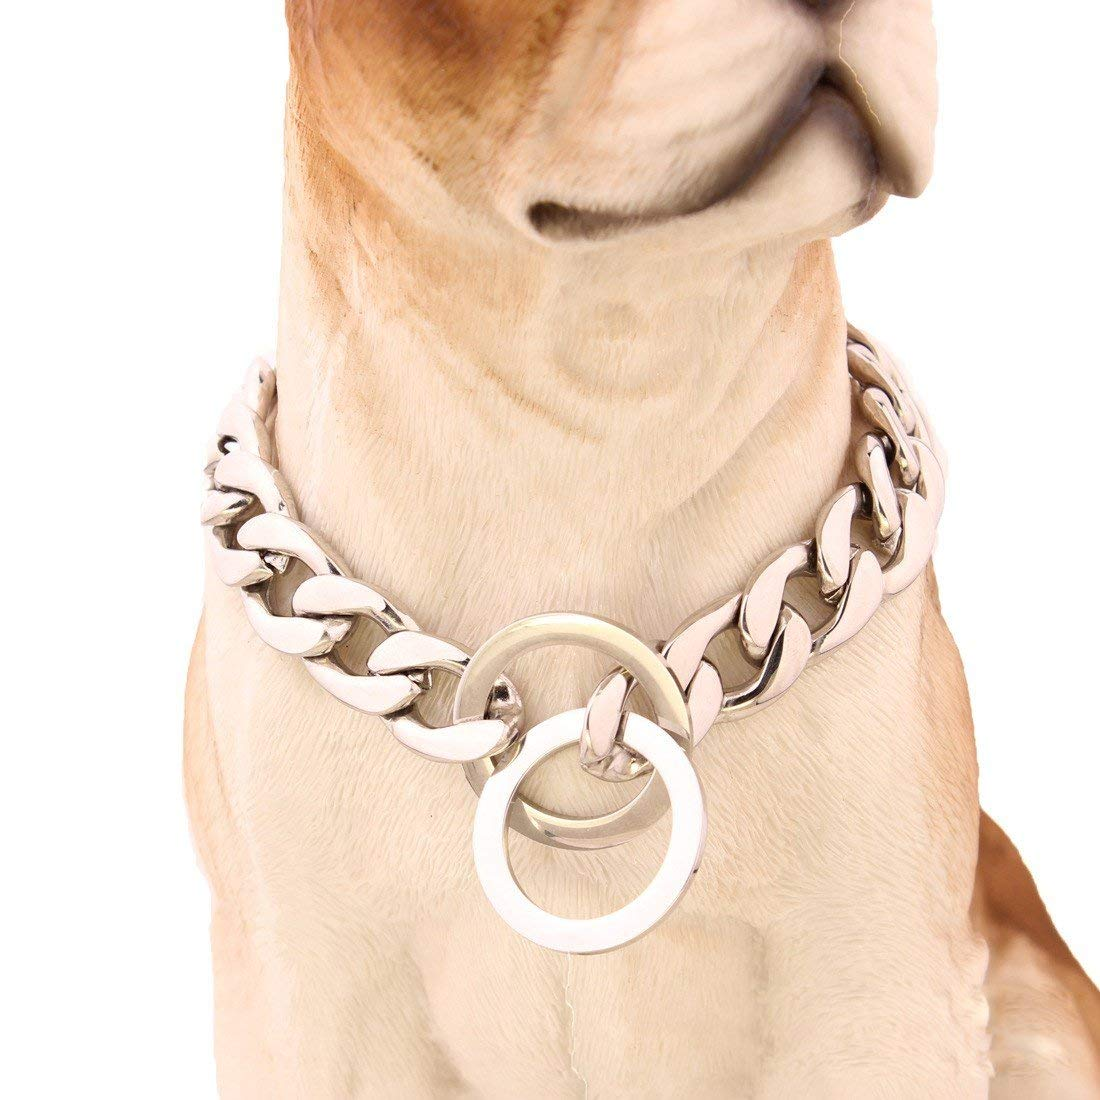 12 inch Pet collar Dog collar mirror polished stainless steel p chain titanium steel chain necklace pet dog training leash Tow Collar 15mmnk link, 20 inches (color   12 inch)